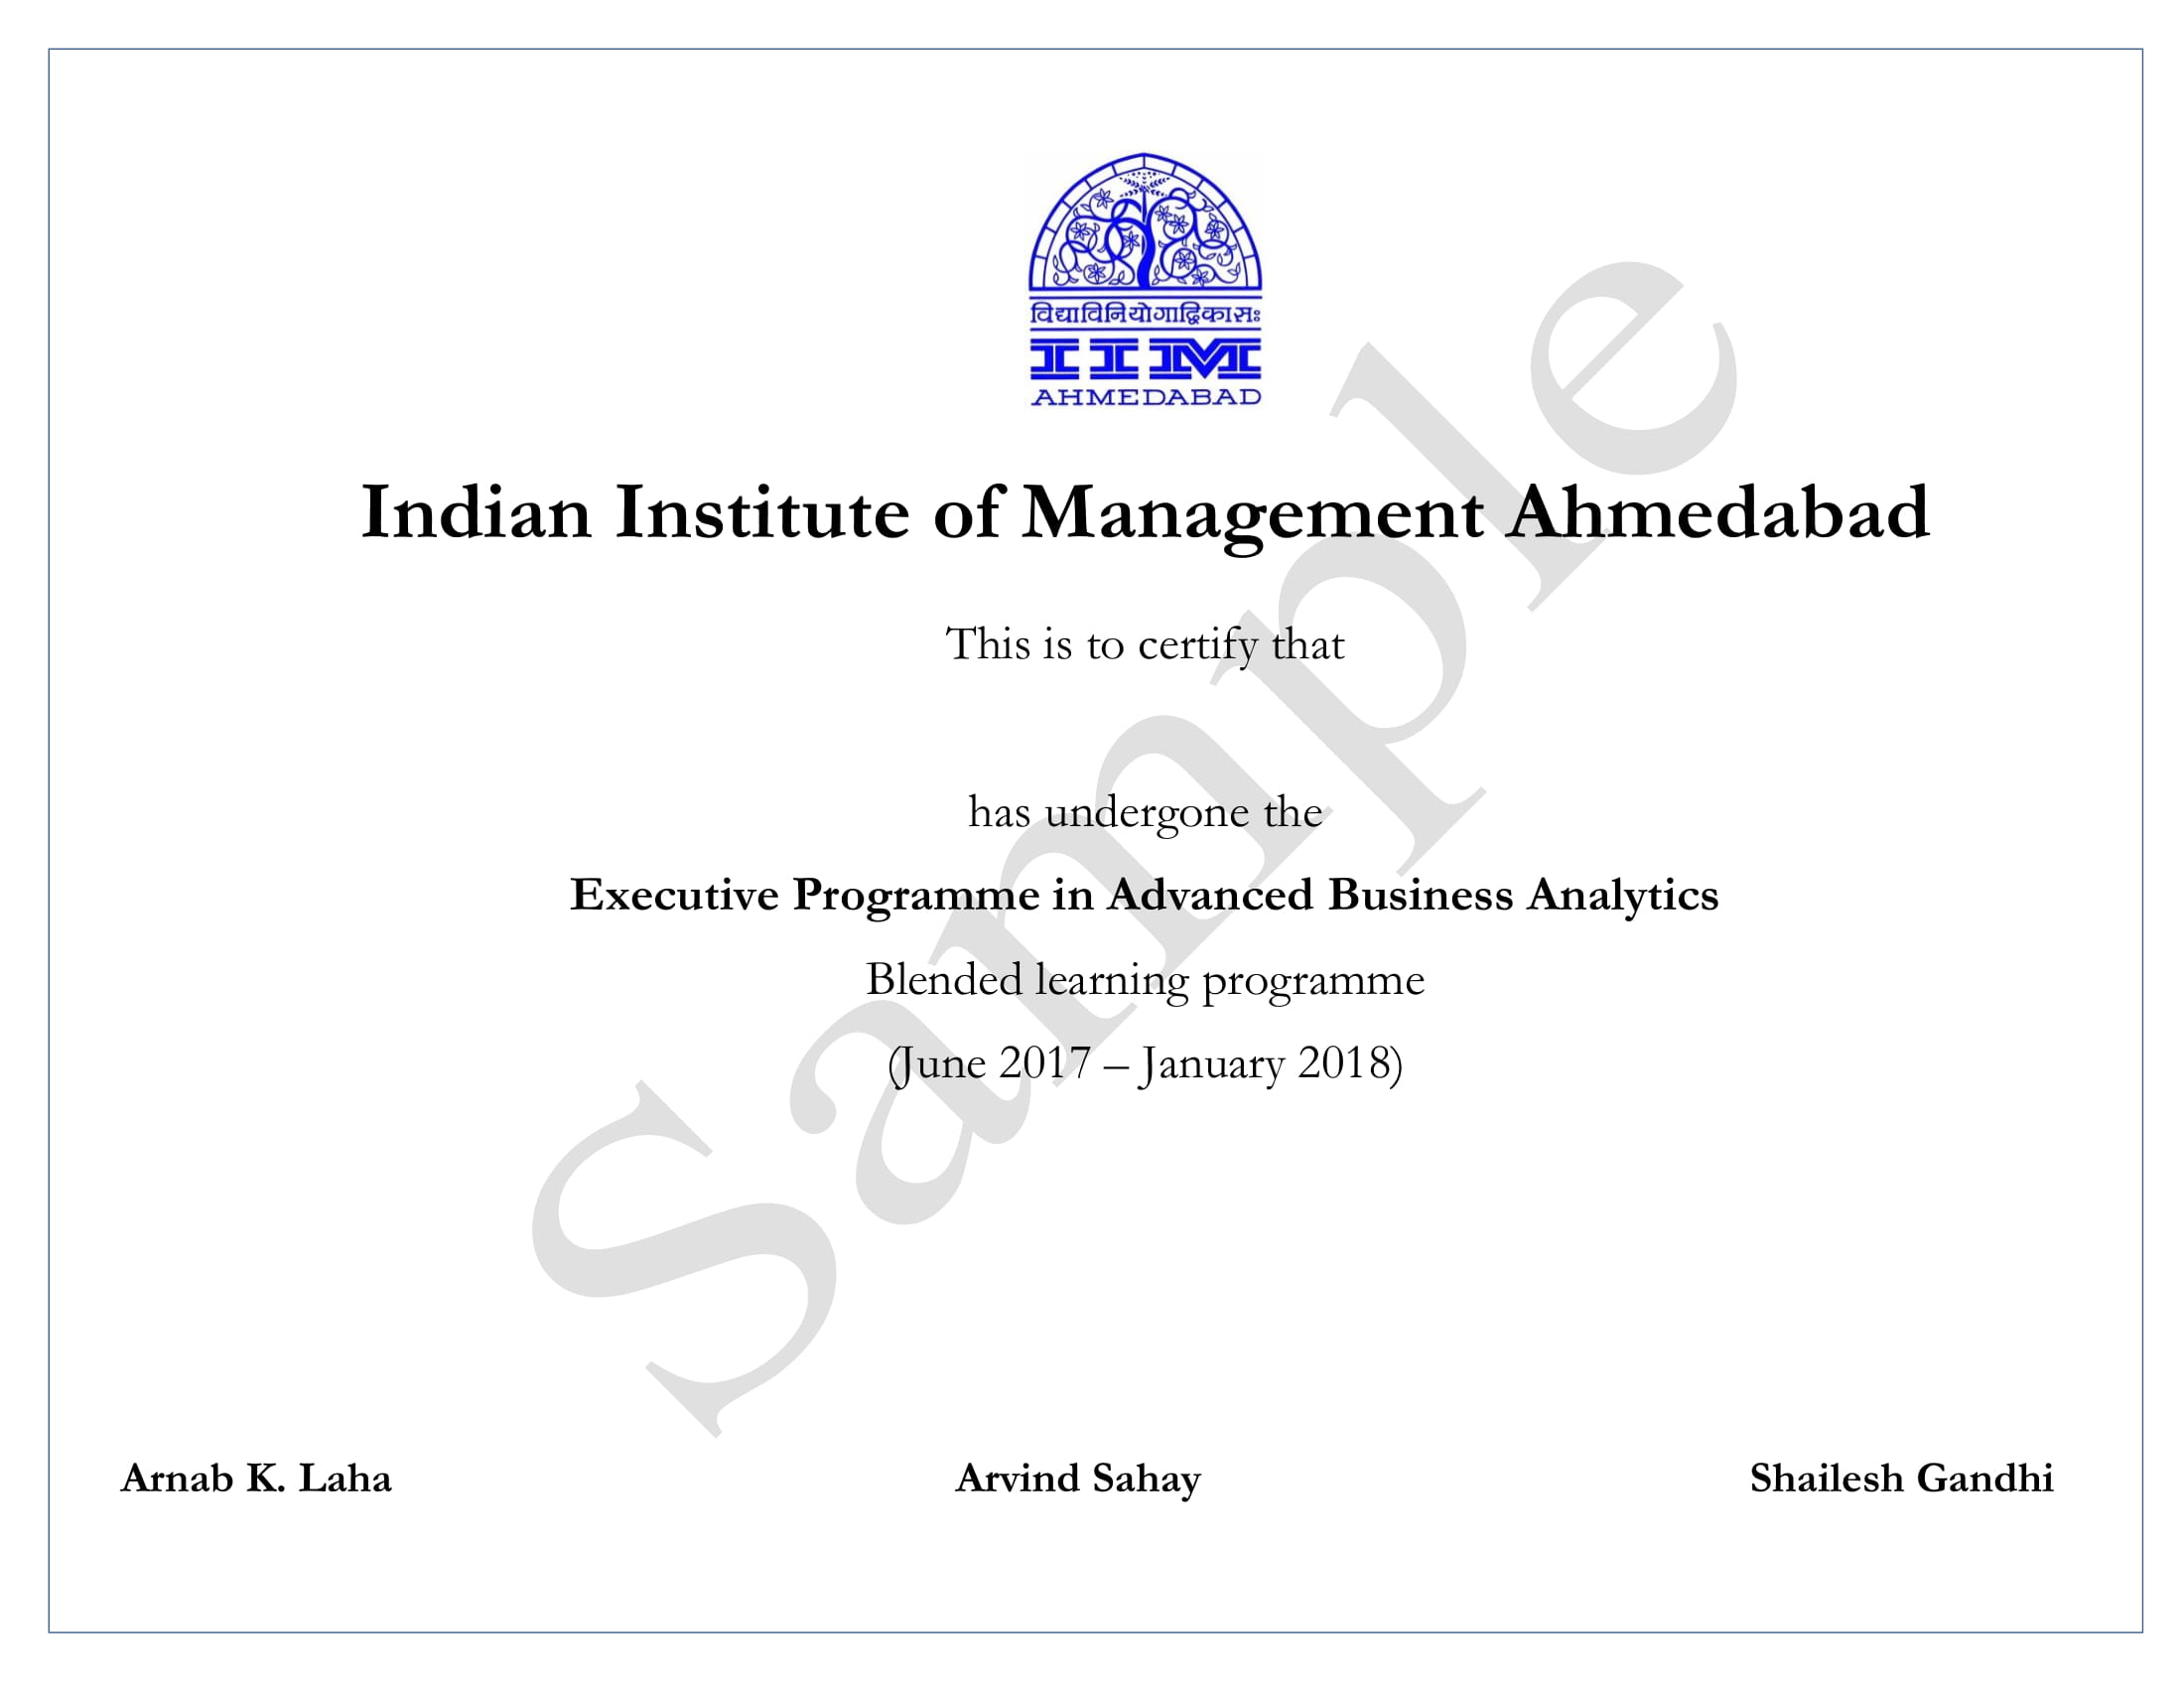 Executive Programme in Advanced Business Analytics from IIM